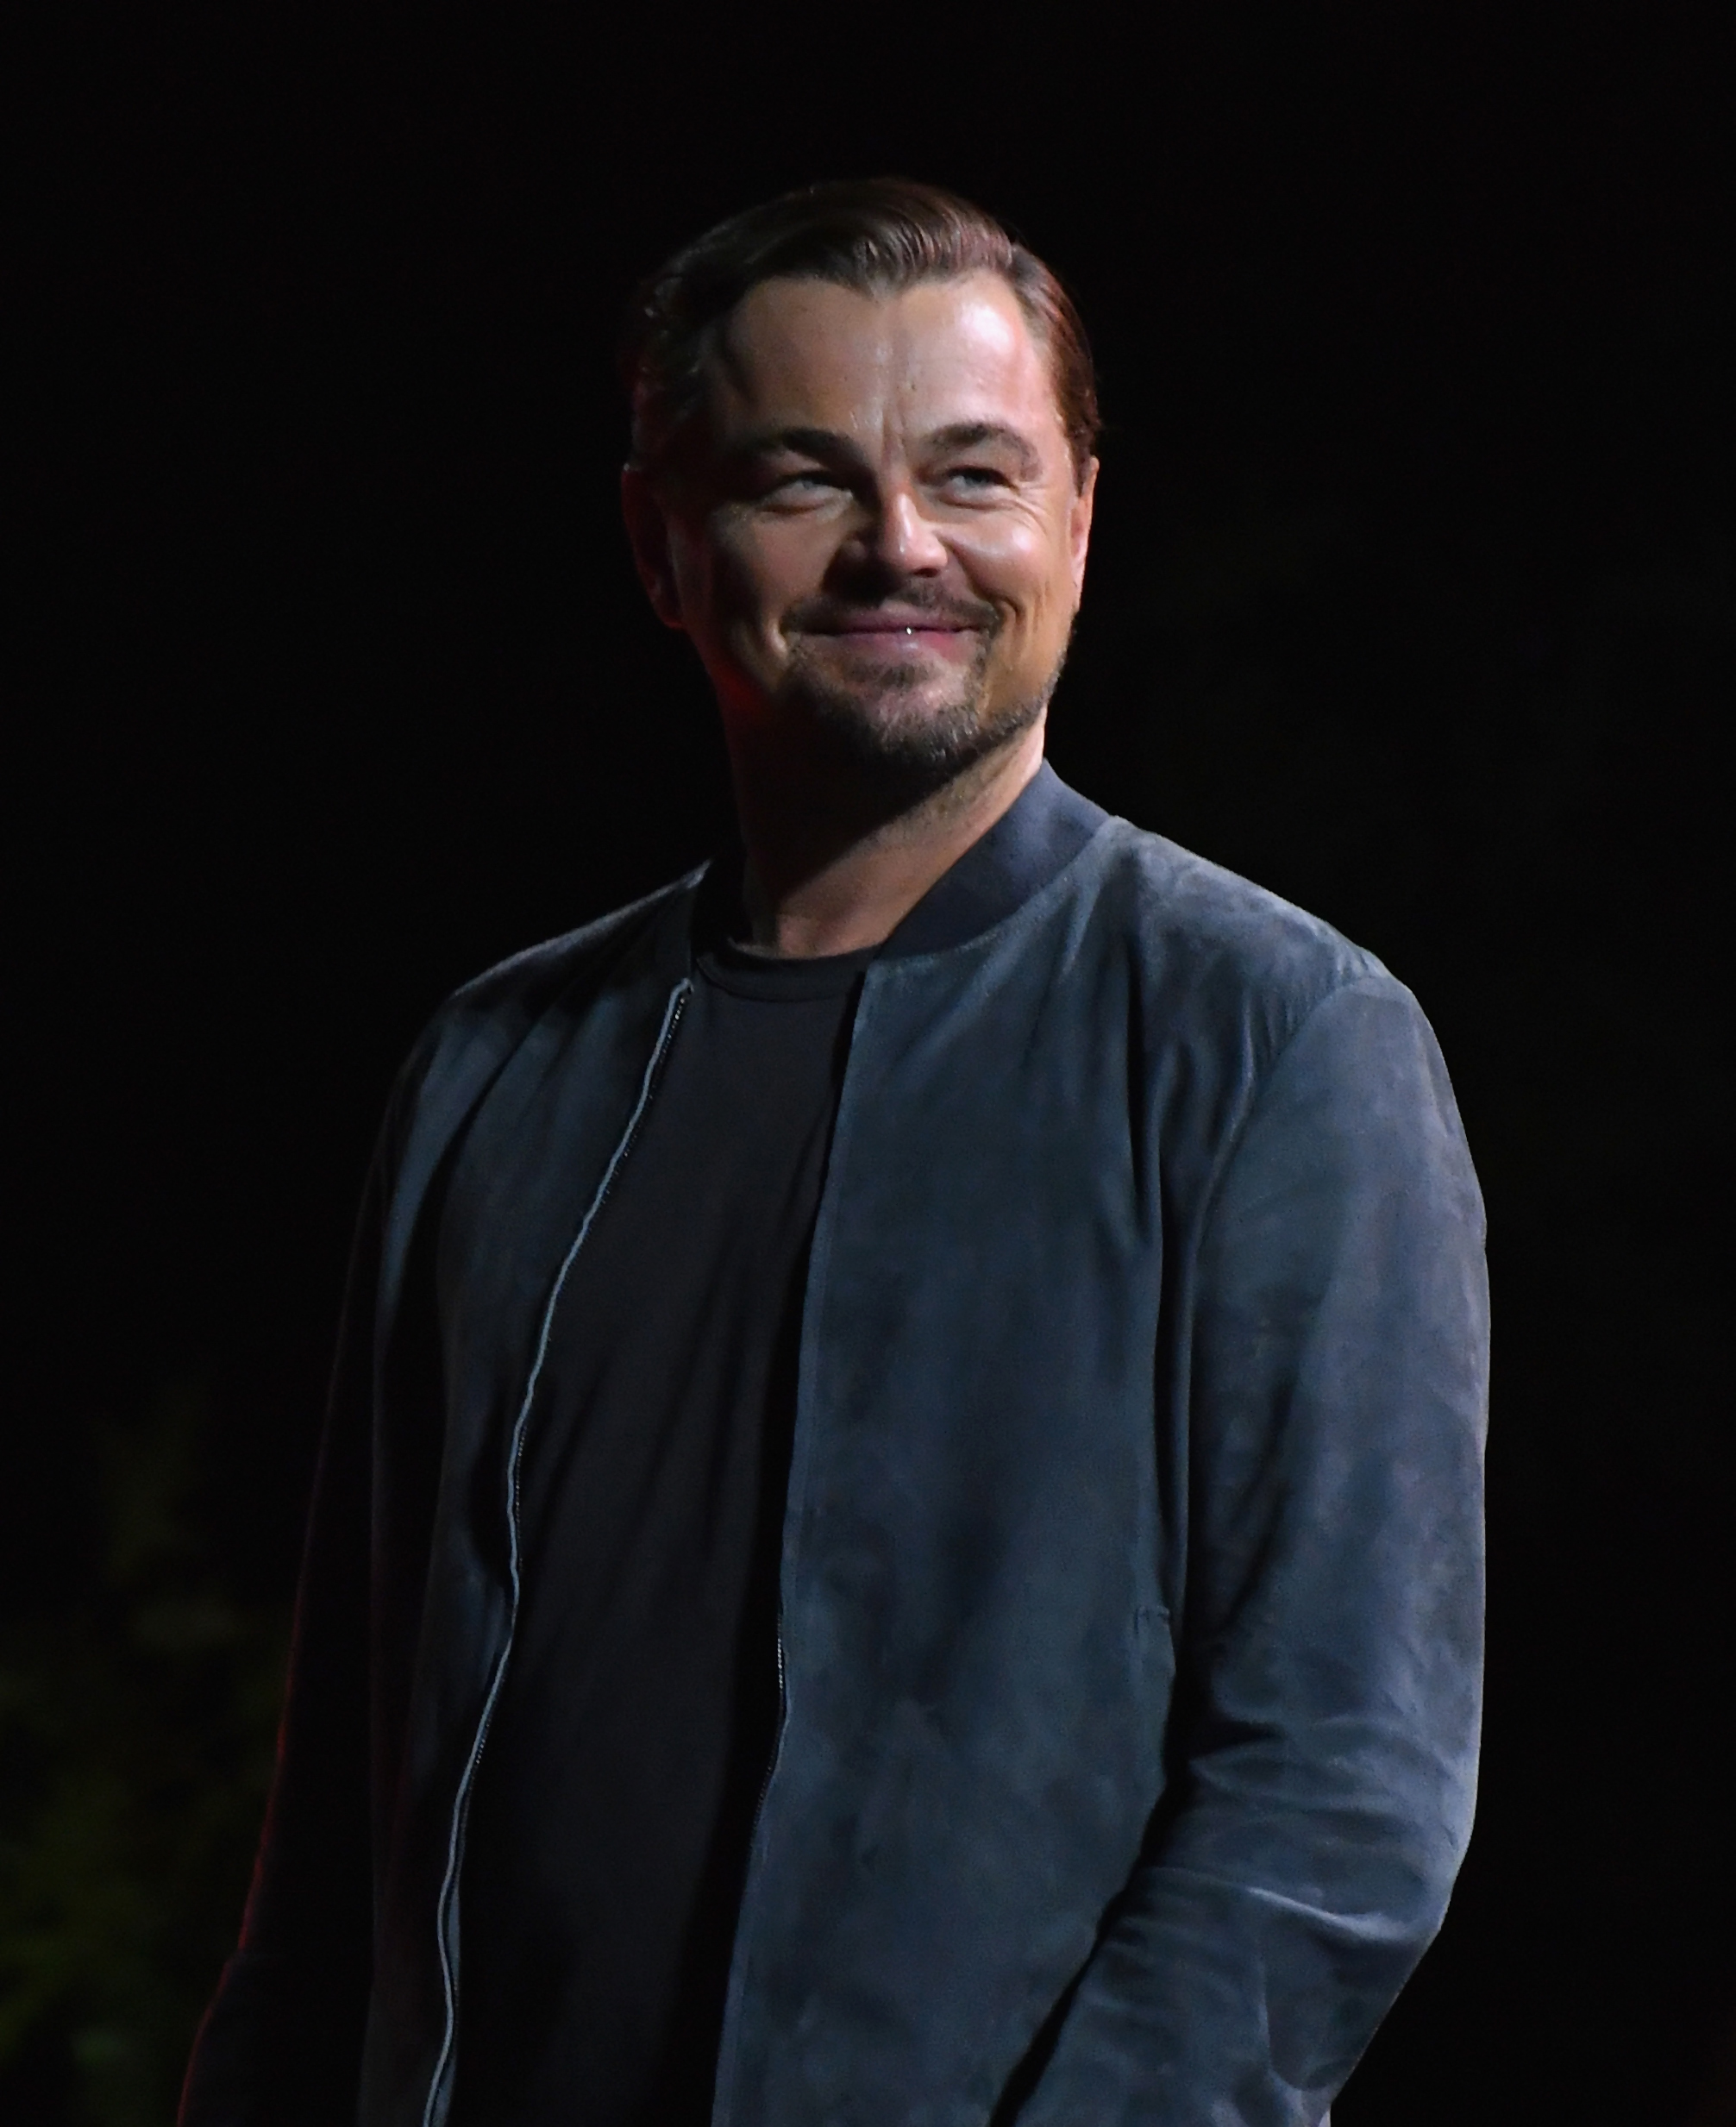 US actor Leonardo DiCaprio smiles as he speaks onstage at the 2019 Global Citizen Festival: Power The Movement in Central Park in New York on September 28, 2019. (Photo by Angela Weiss / AFP)        (Photo credit should read ANGELA WEISS/AFP/Getty Images)